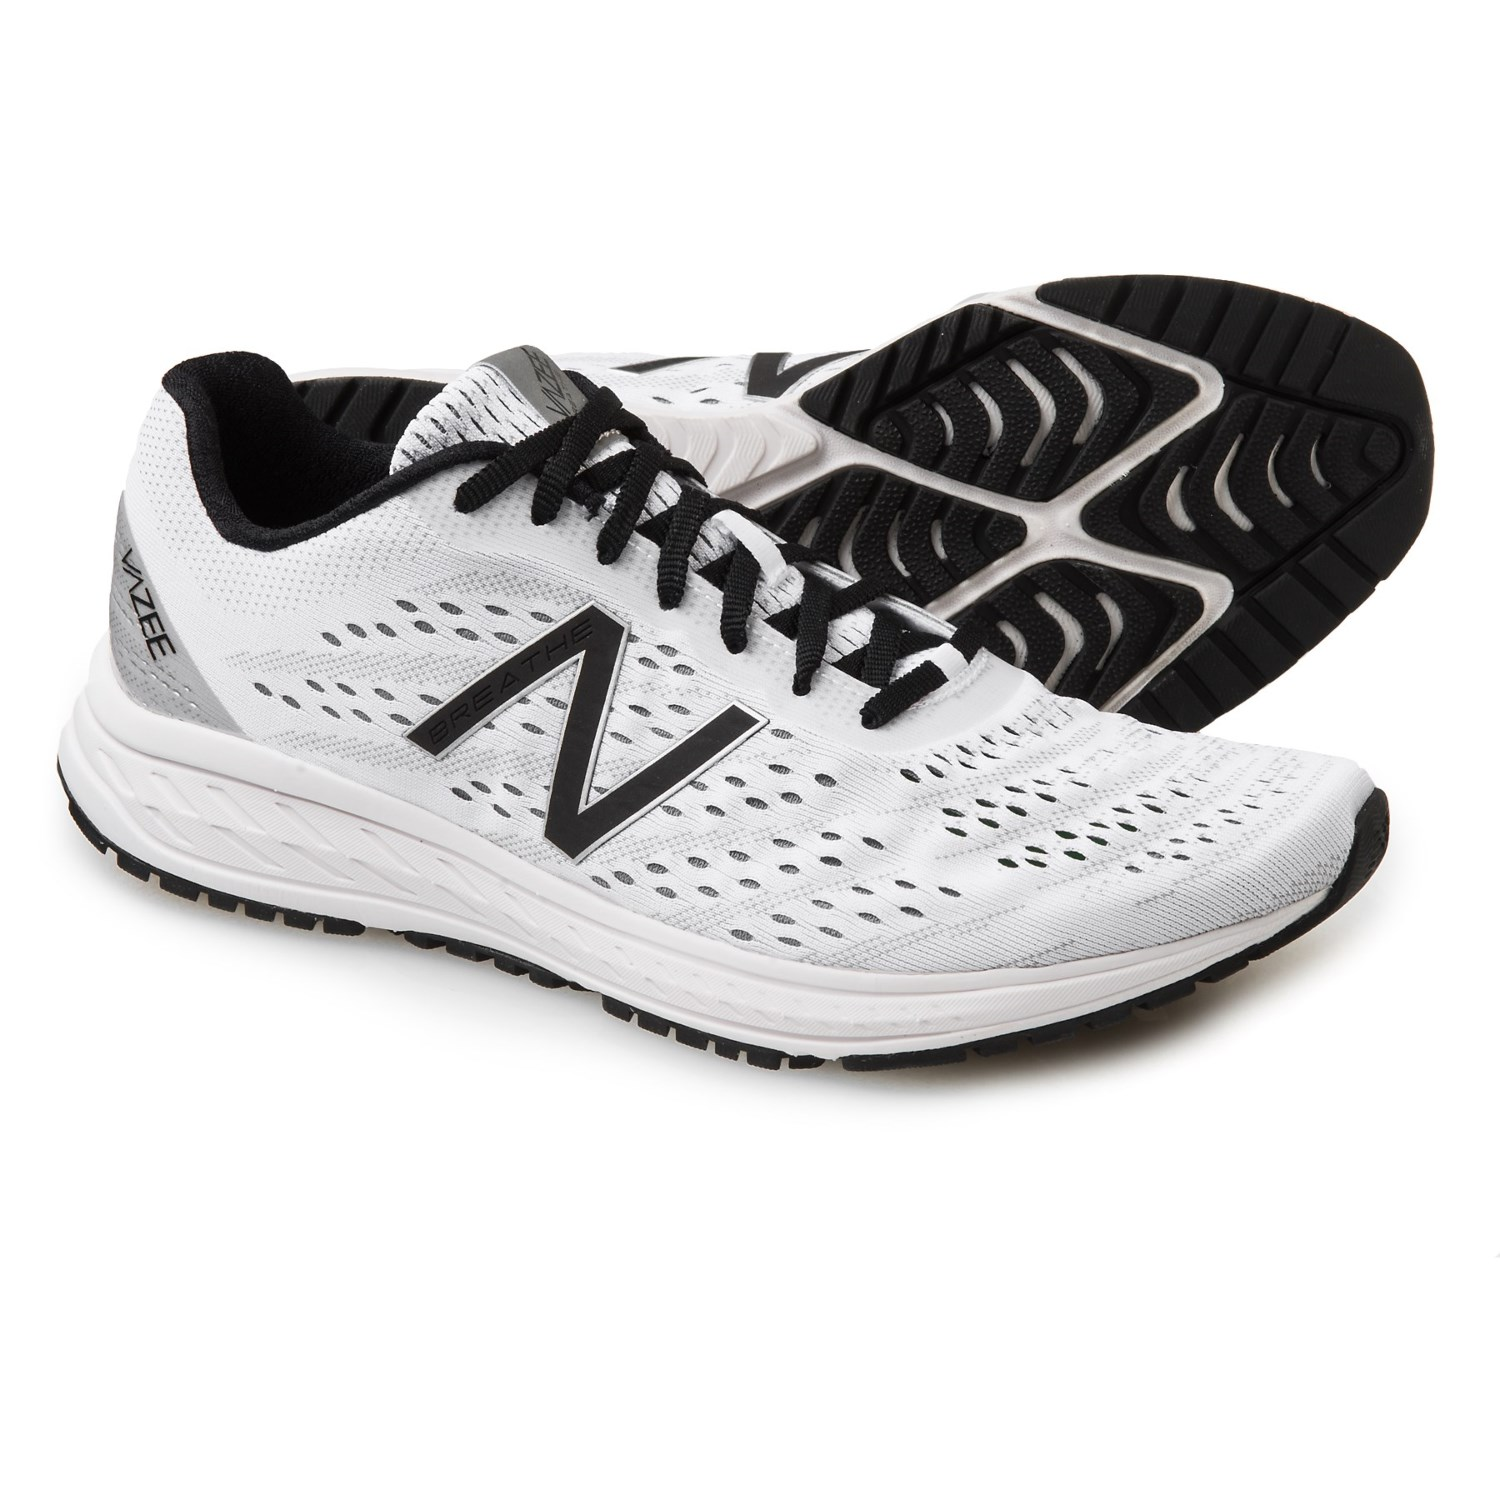 Dunlop Running Shoes Review